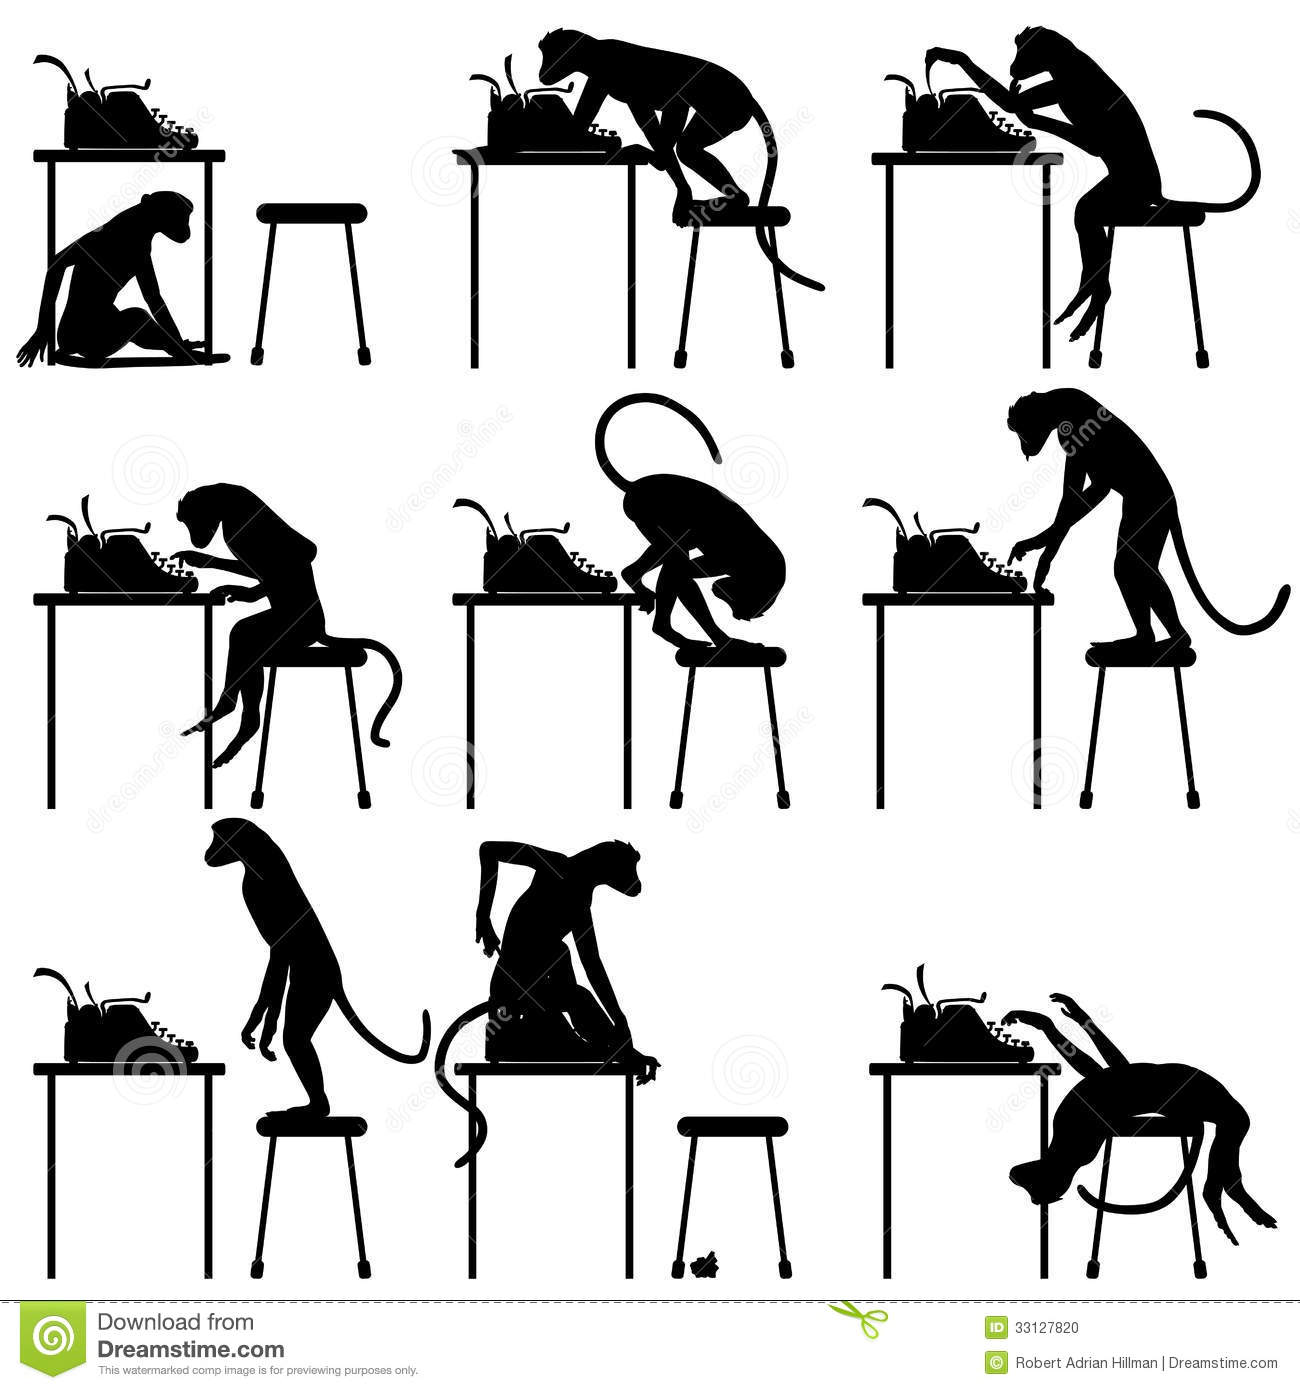 Image result for monkeys typing